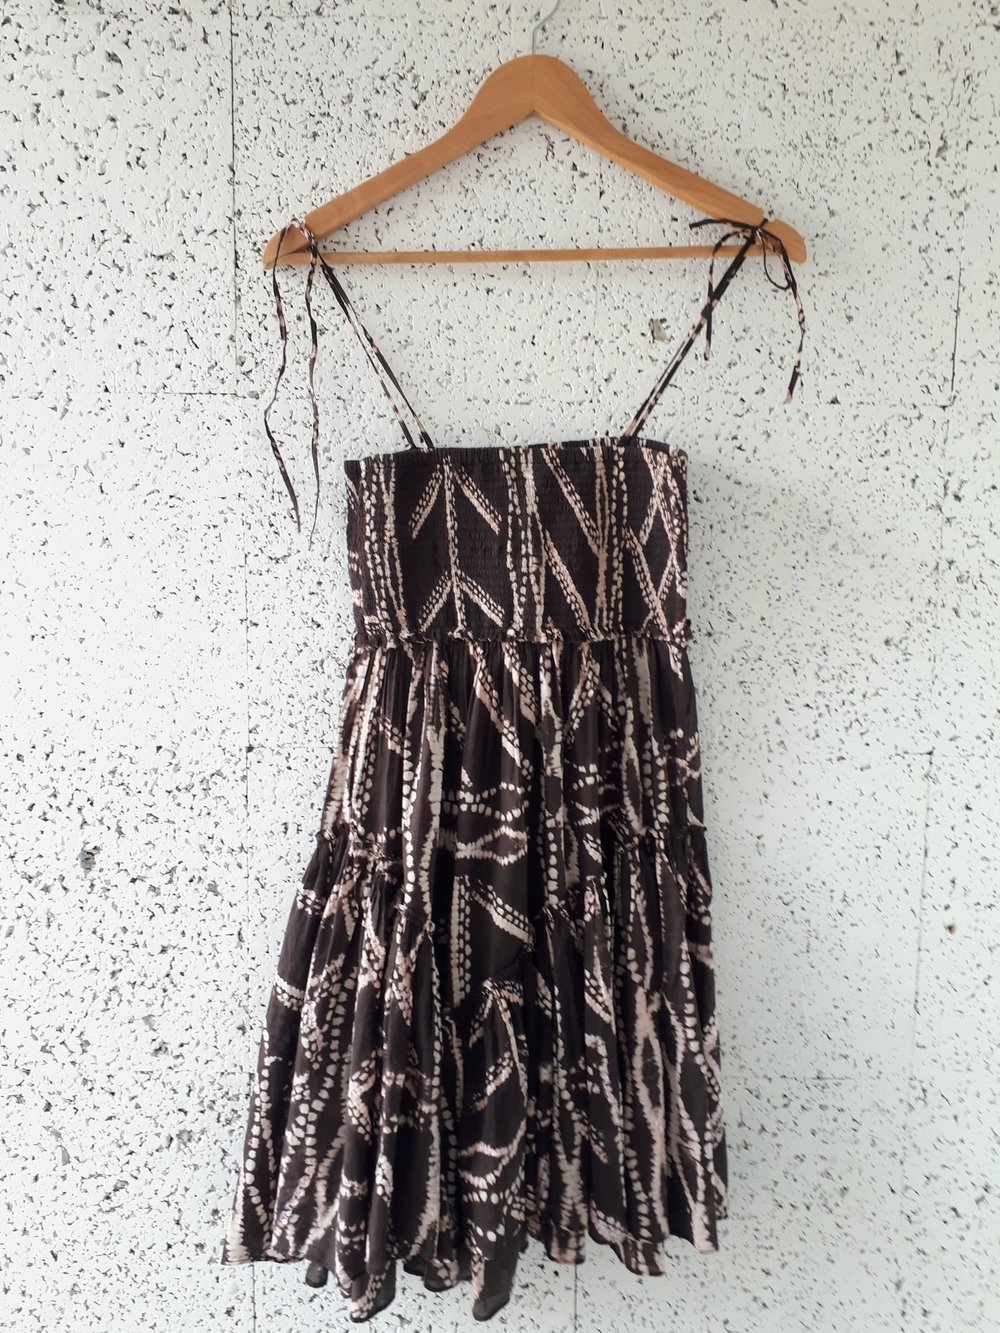 All Saints dress; Size S, $62